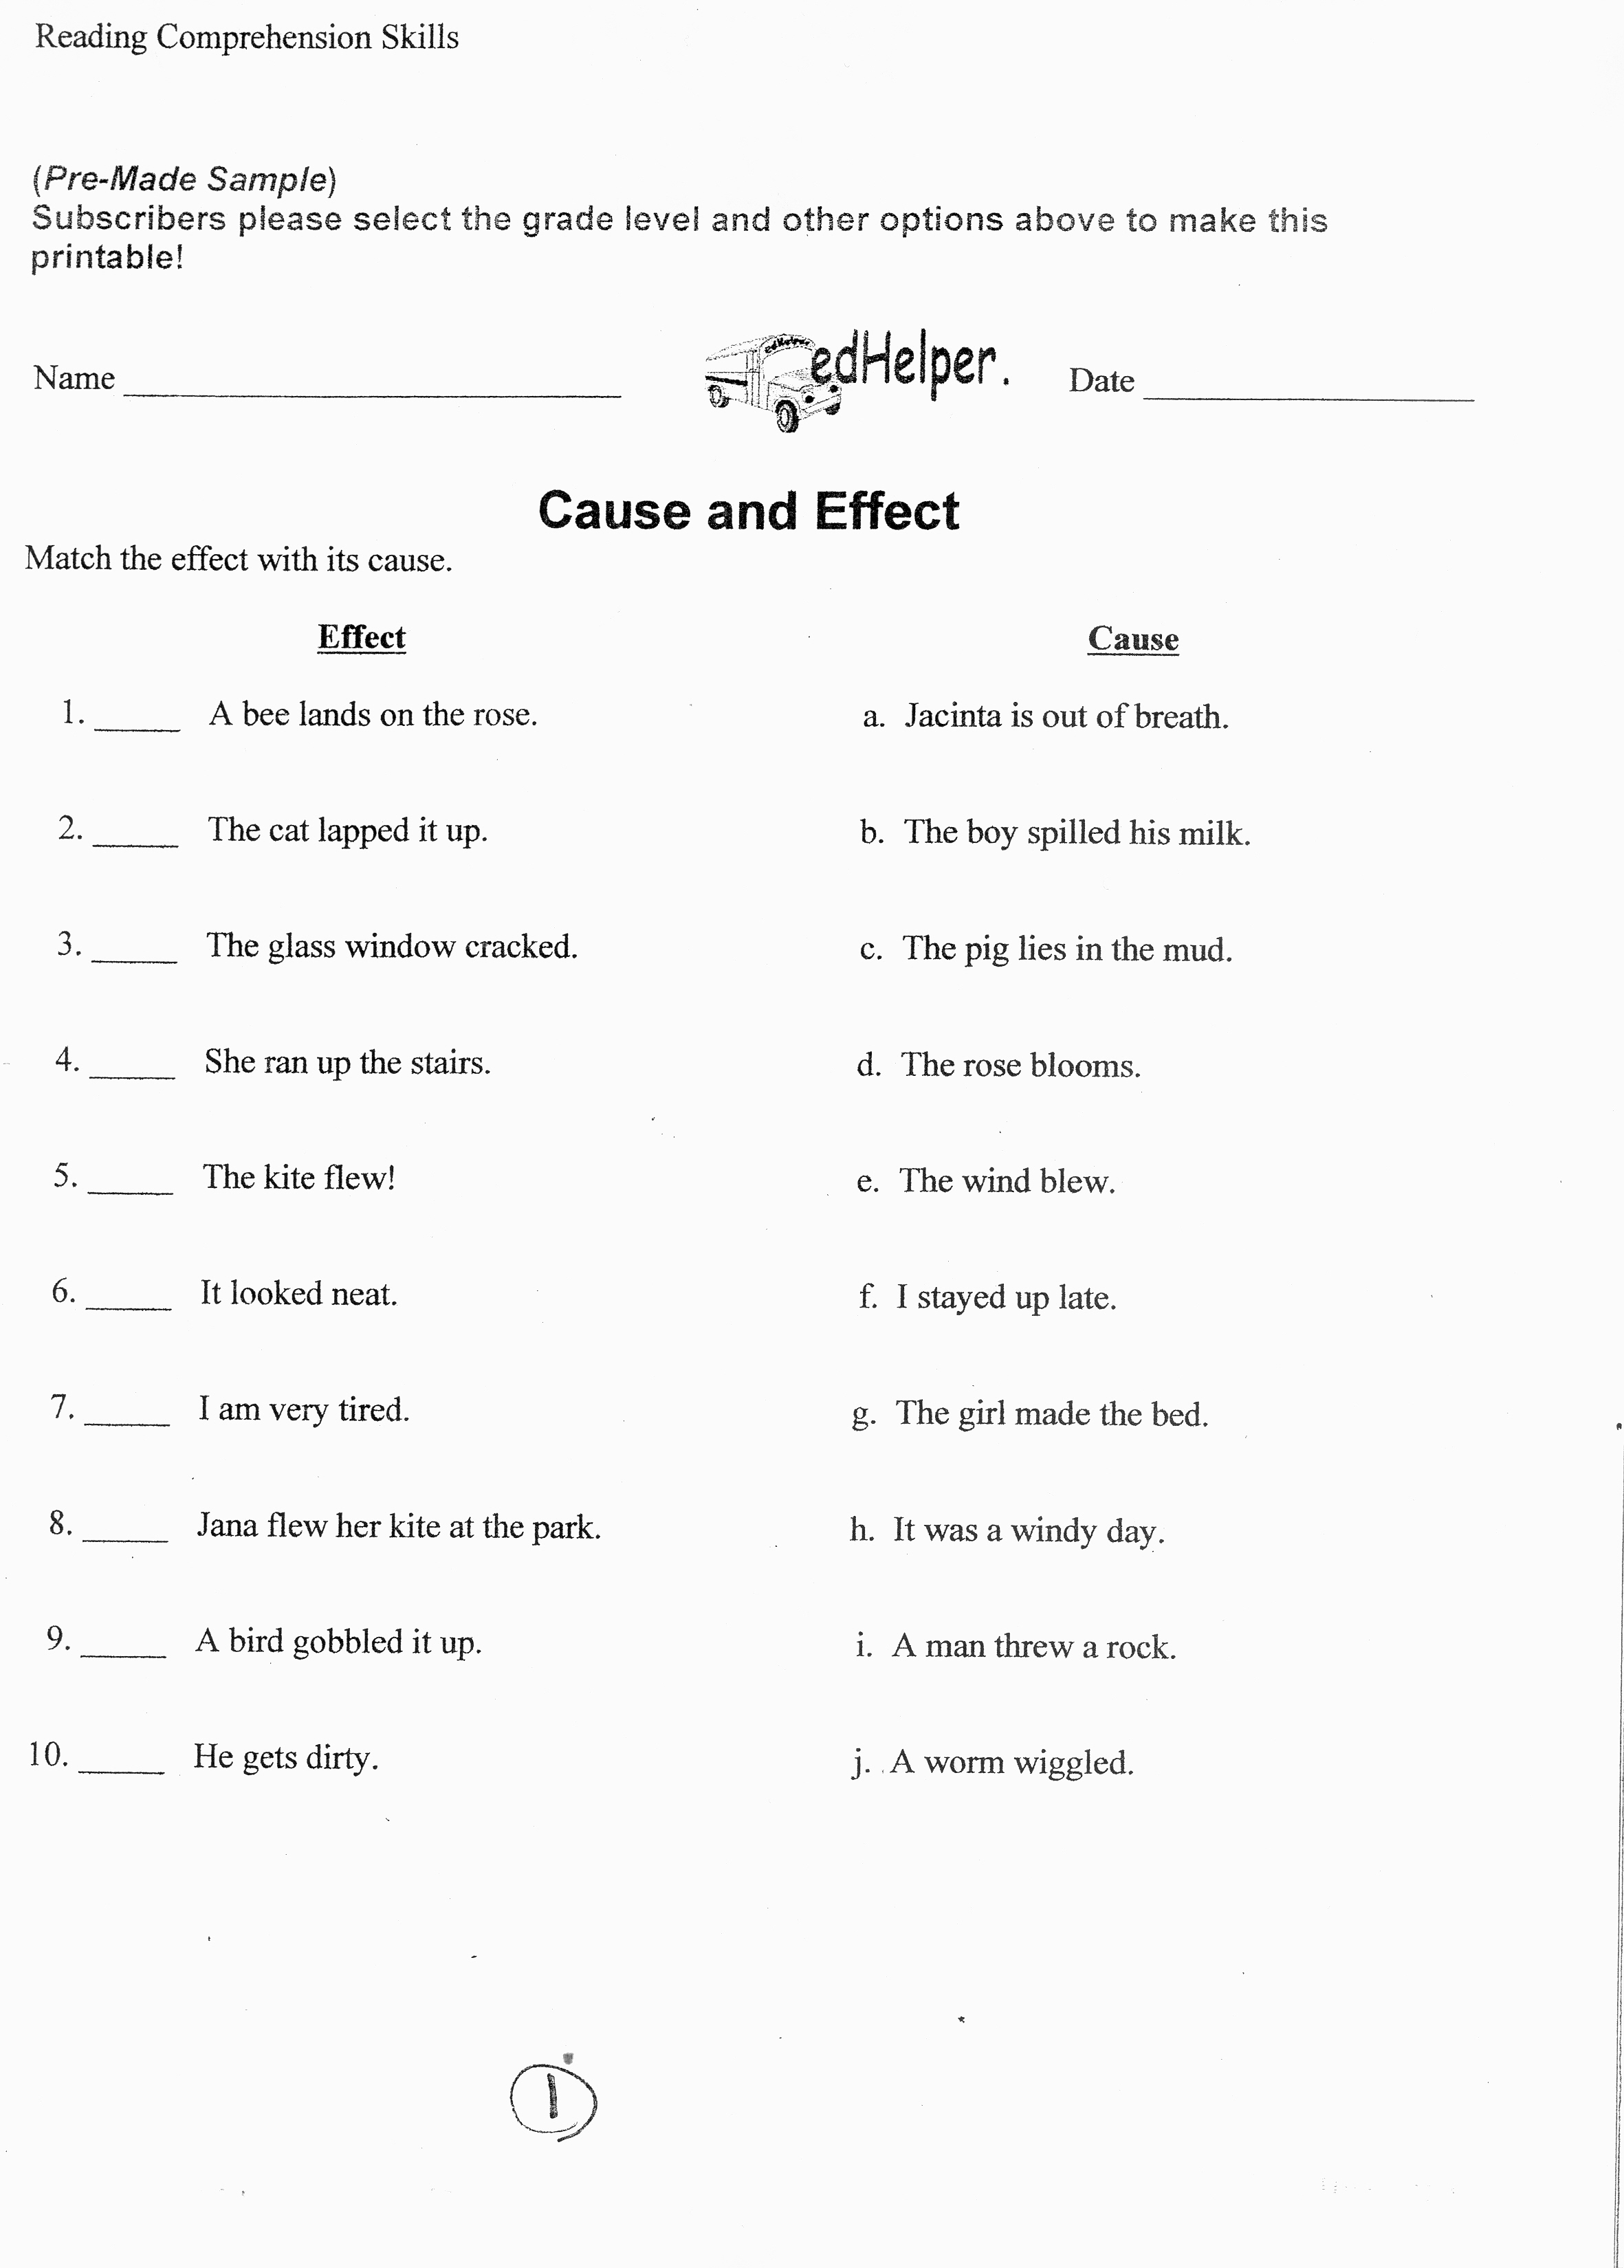 Worksheets Cause And Effect Worksheets For Middle School 6th grade lessons middle school language arts help cause and effect worksheet